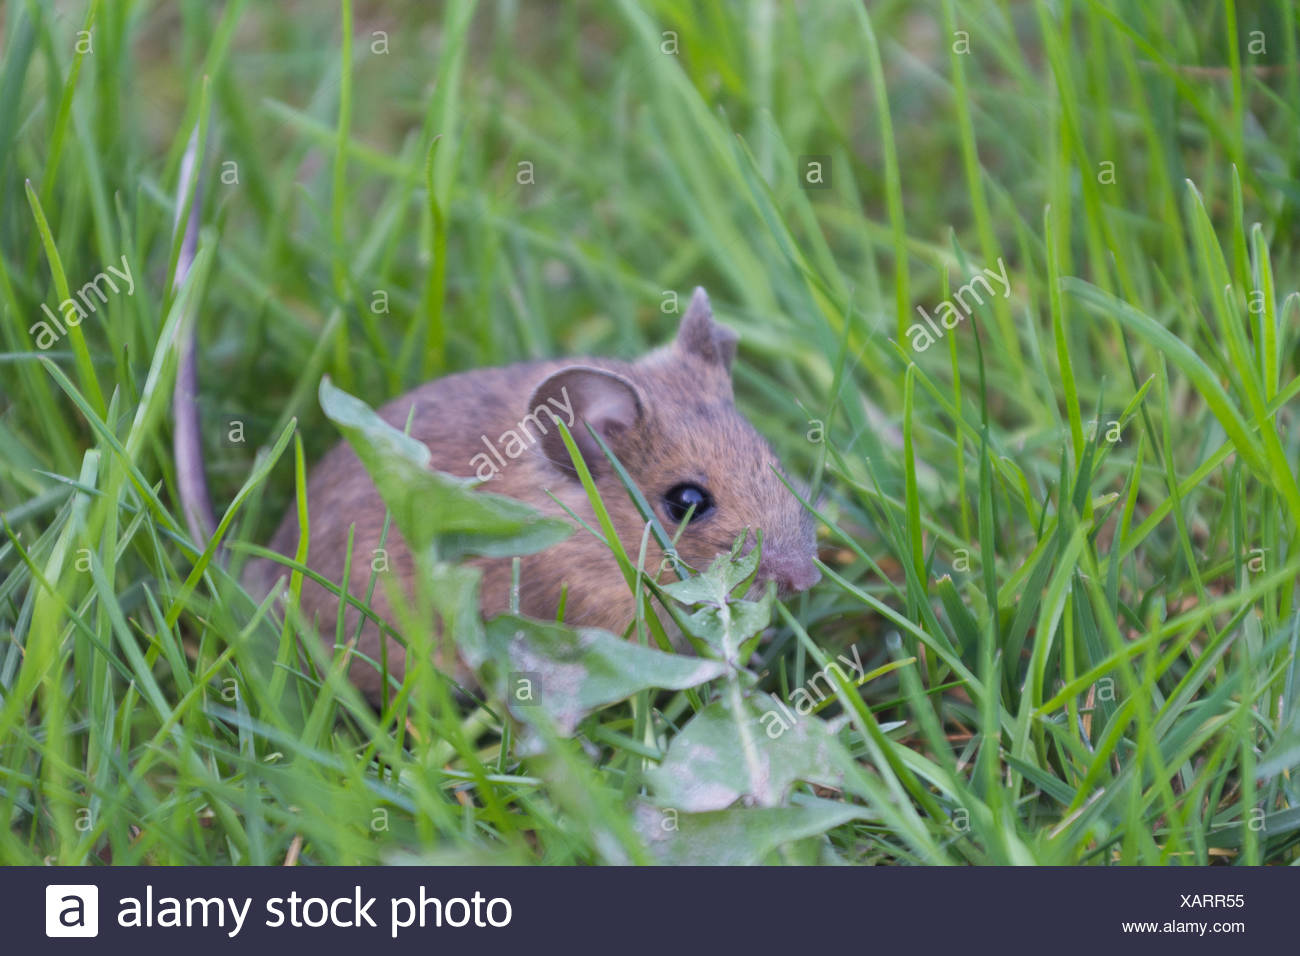 Gray mouse sitting anxiously in the grass Stock Photo